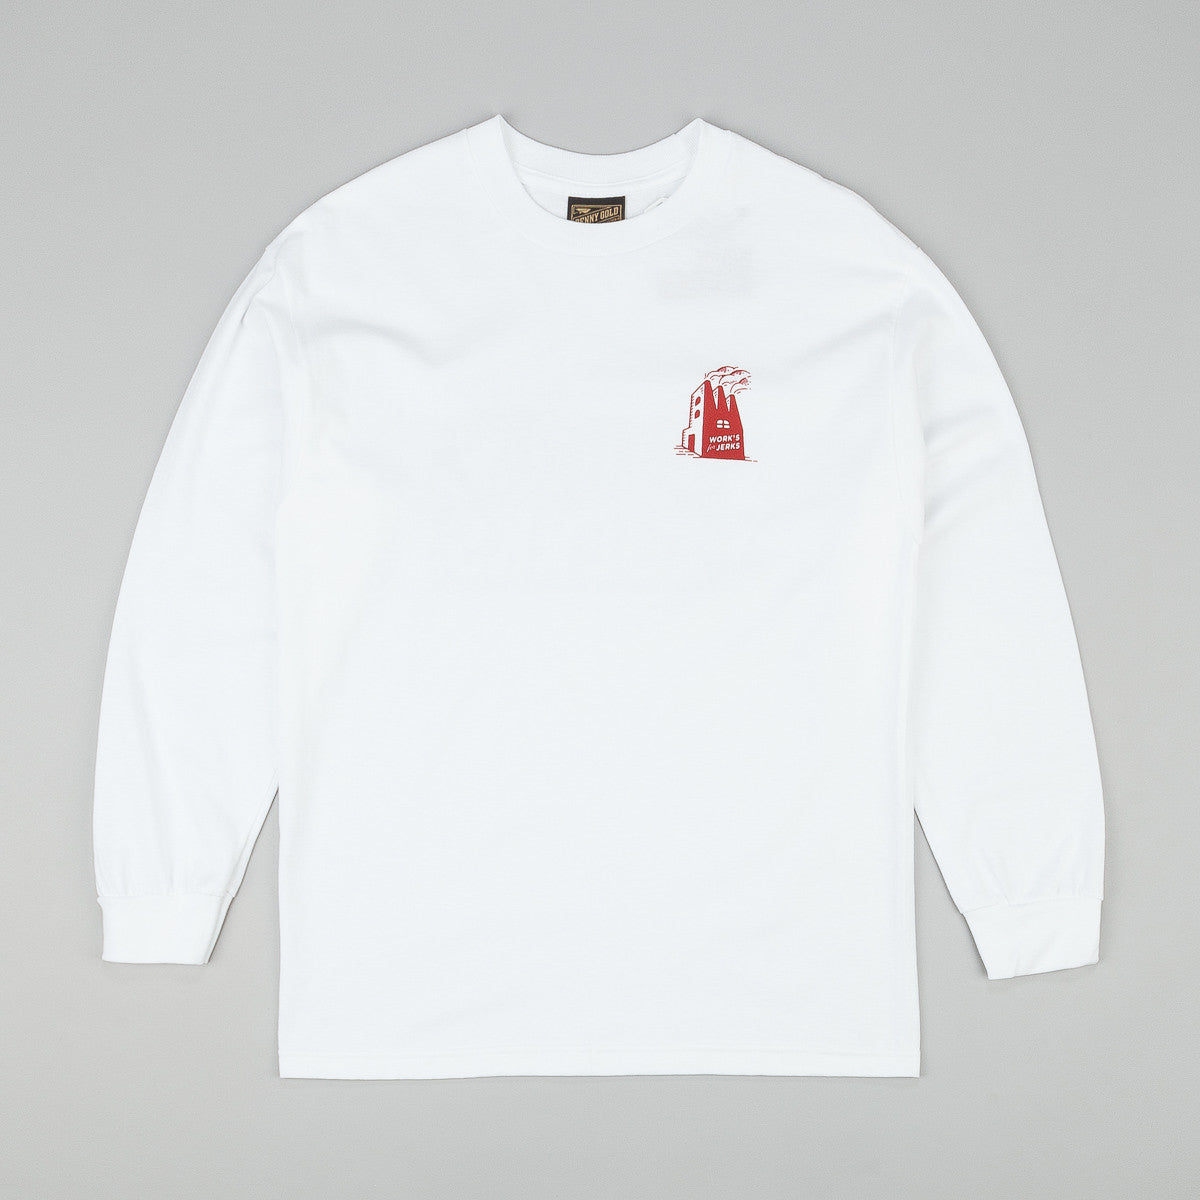 Benny Gold Factory Long Sleeve T-Shirt